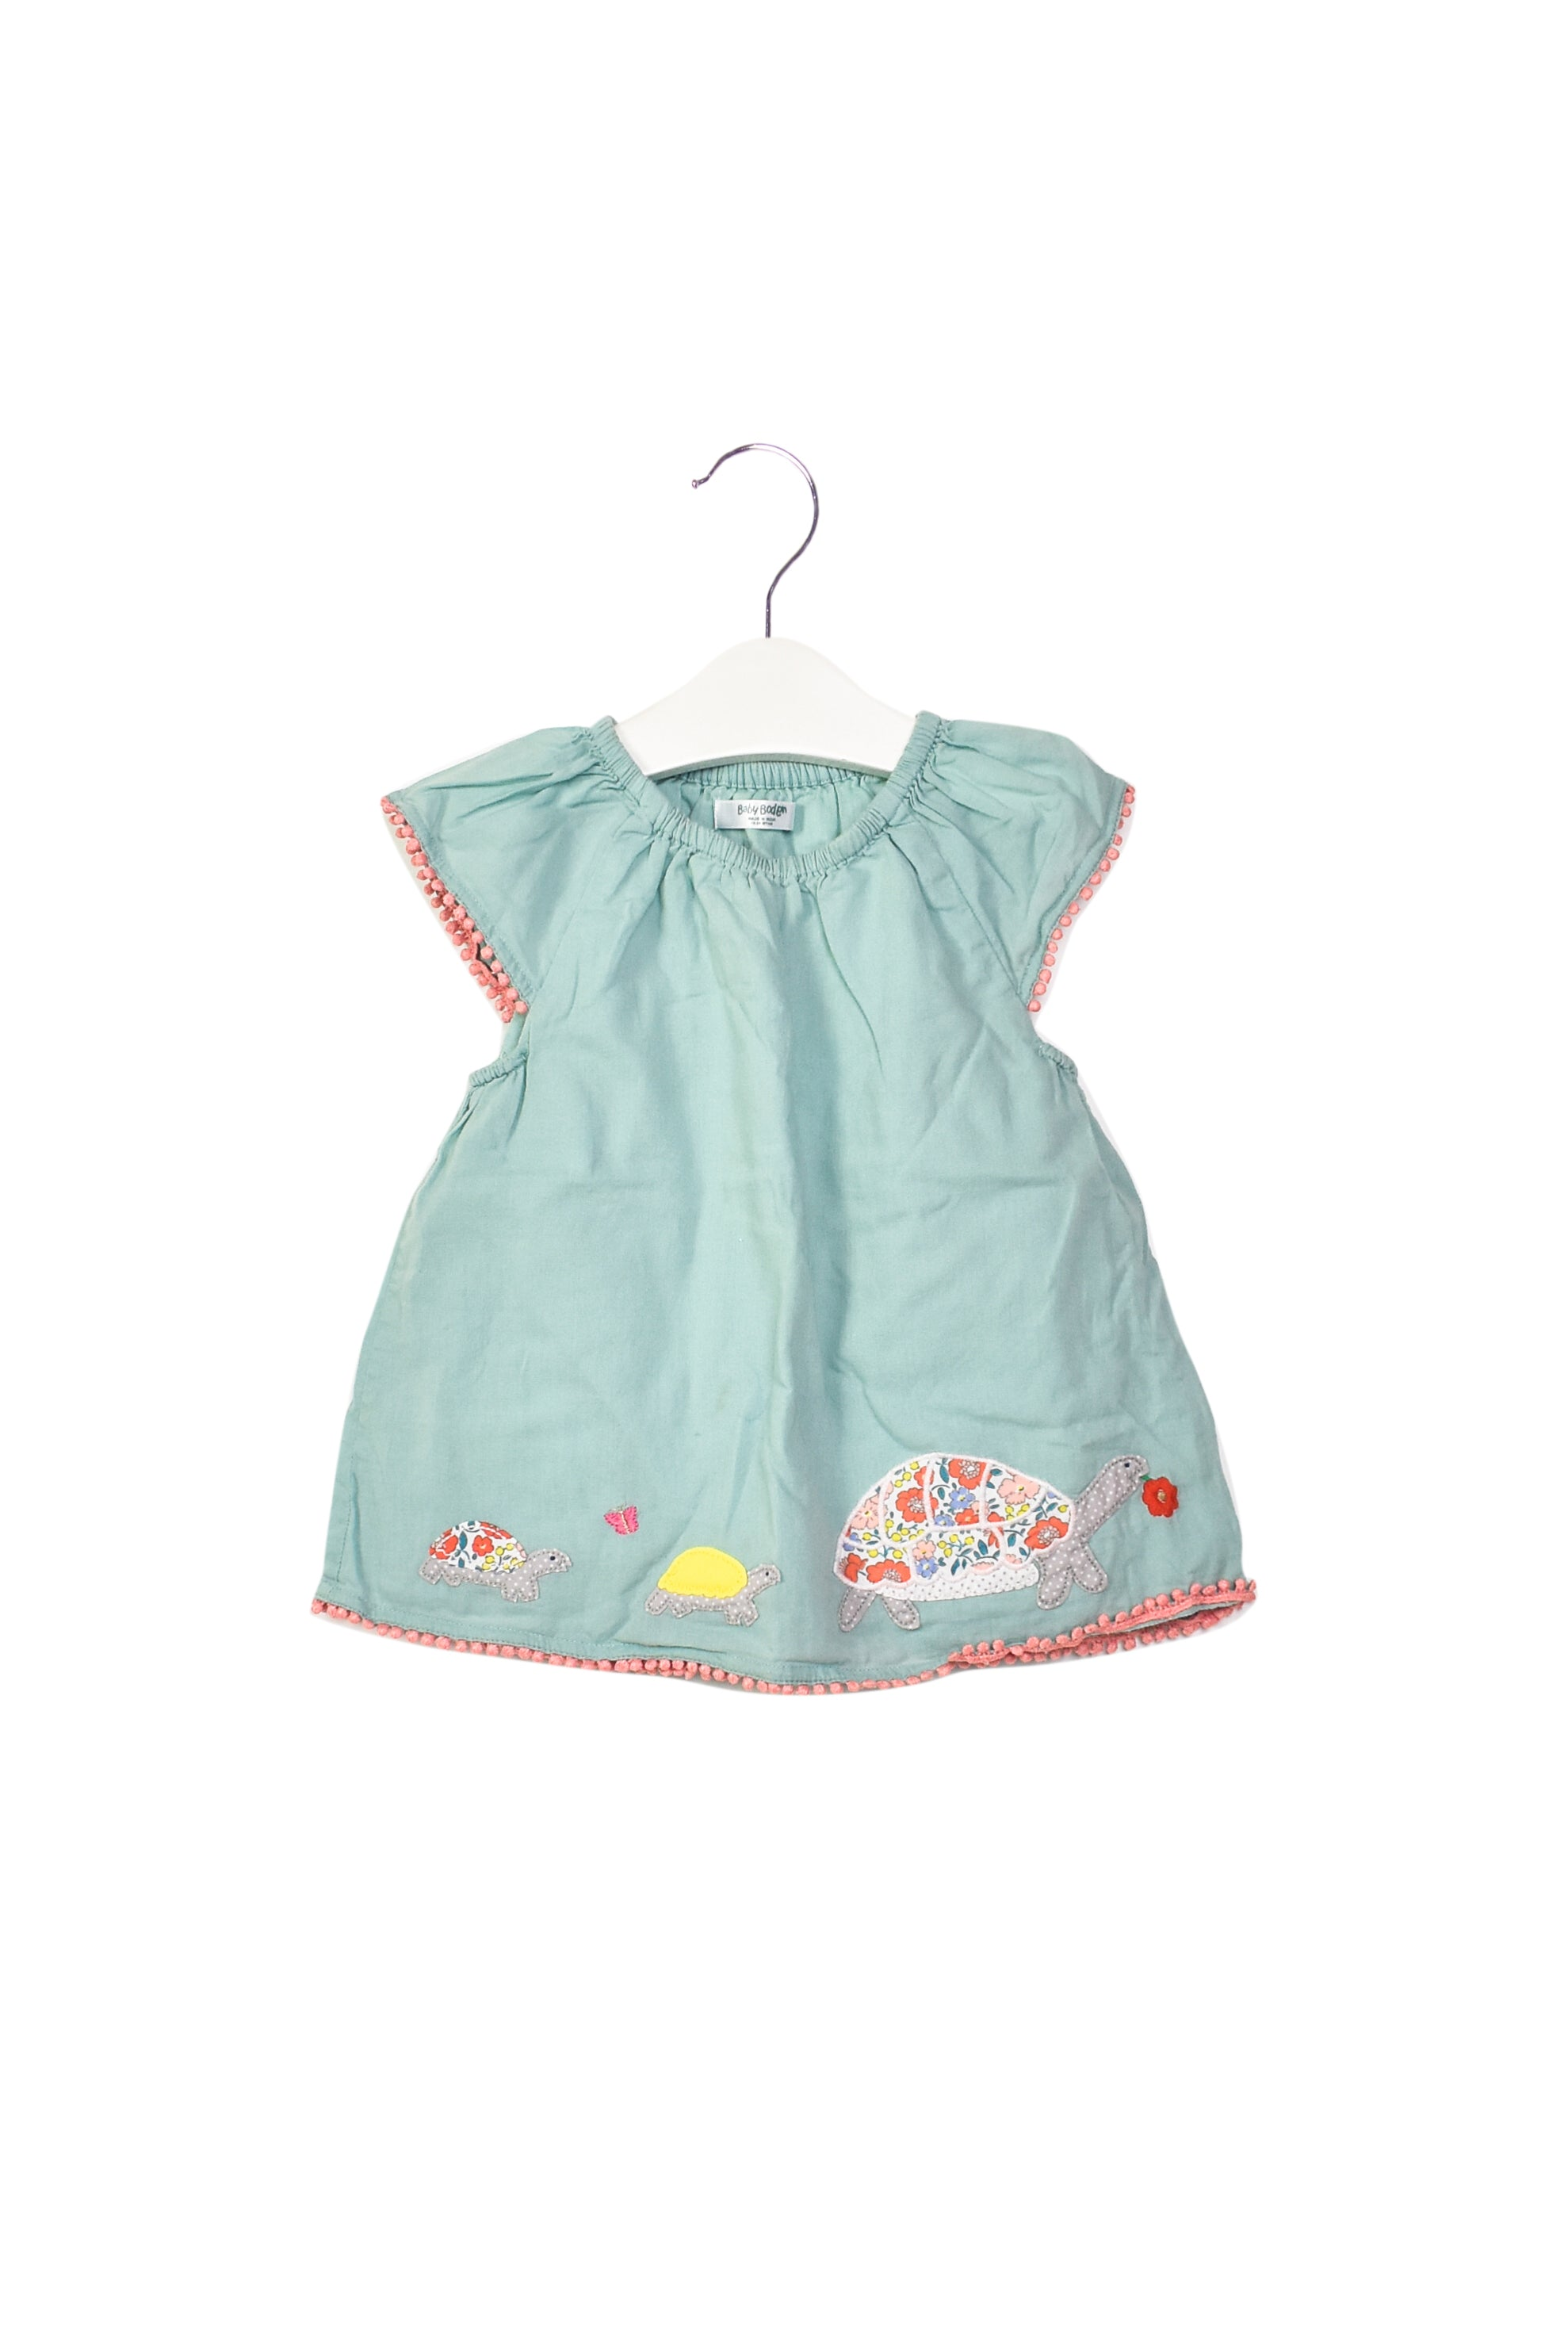 10013286 Boden Baby ~ Dress 18-24M at Retykle